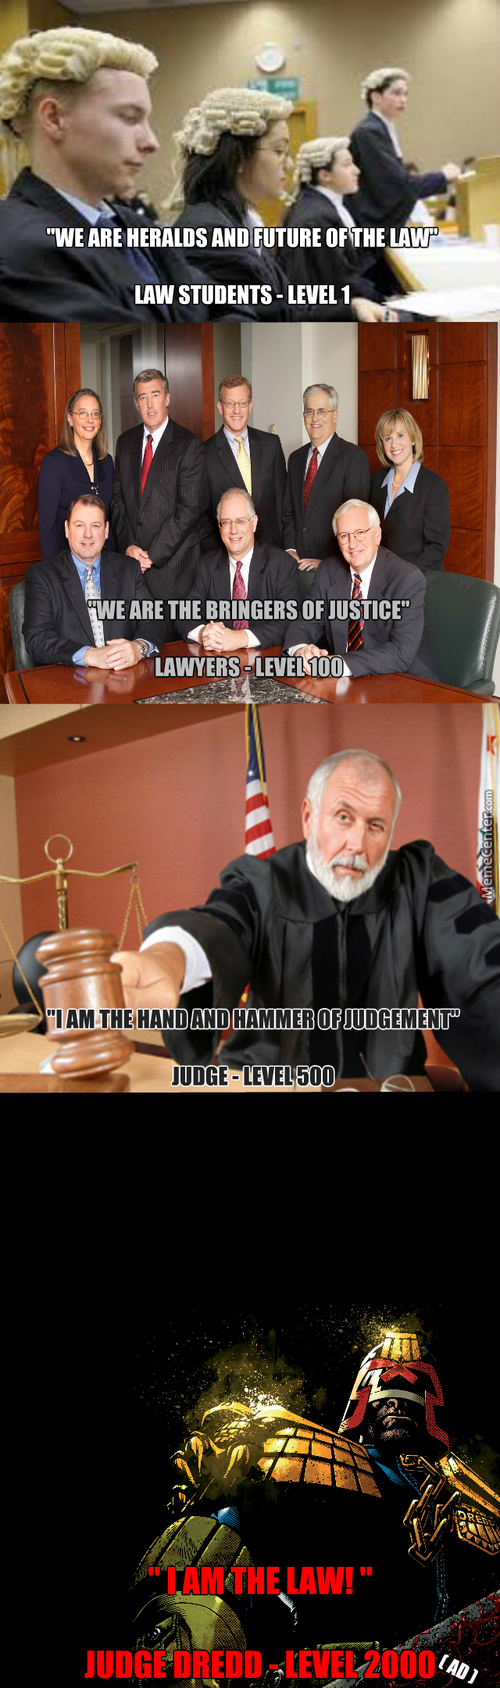 Justice System Levels